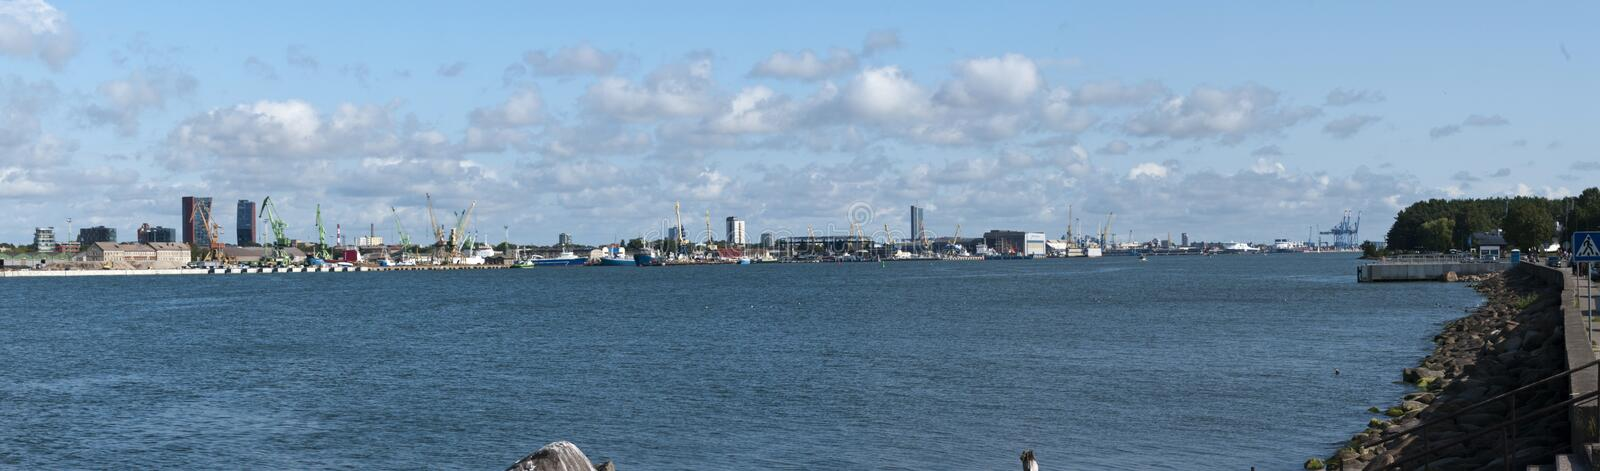 Klaipeda harbour, Lithuania royalty free stock photography